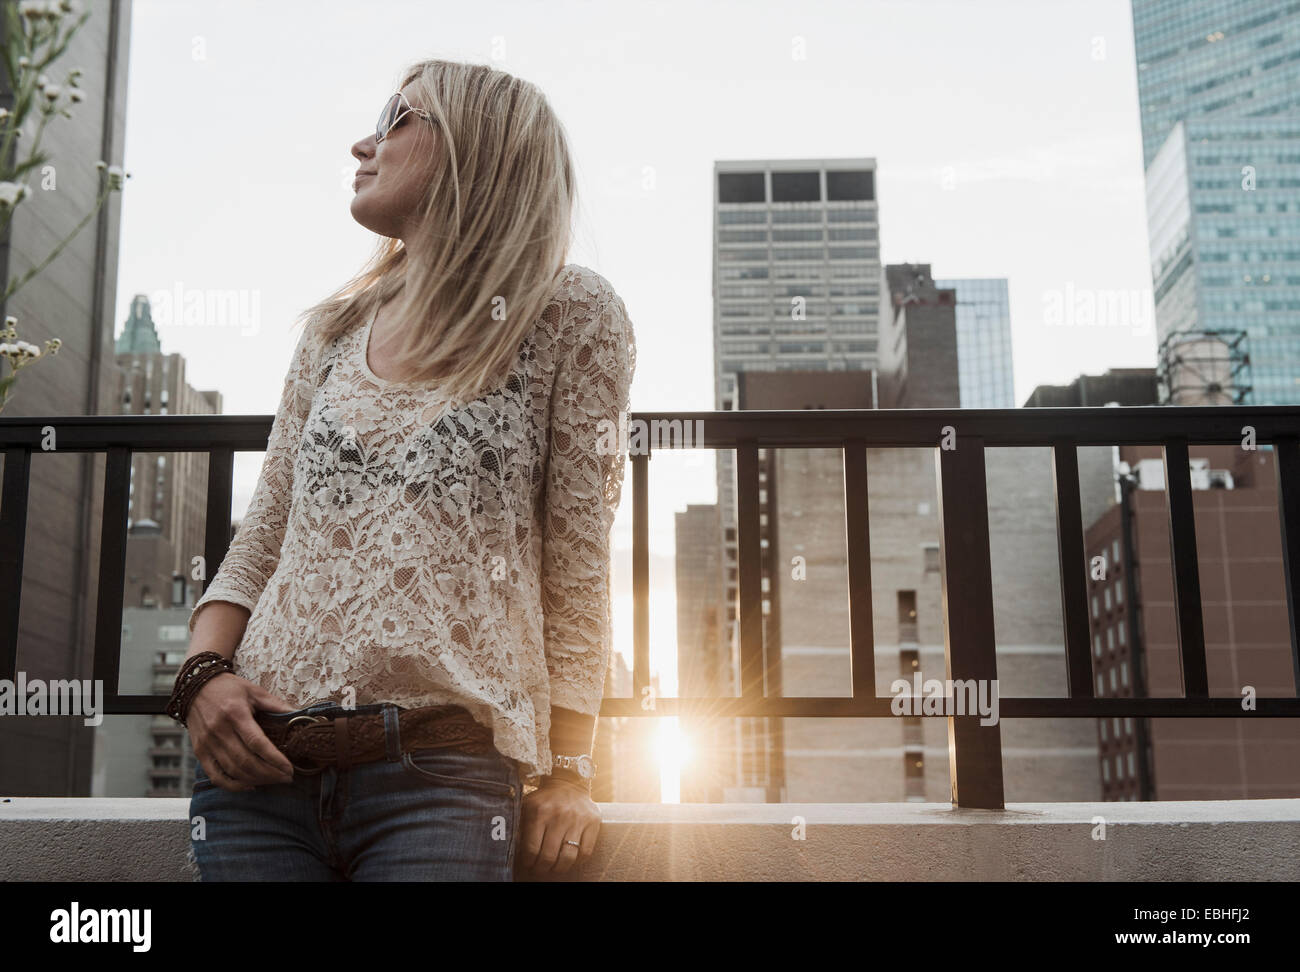 Young woman looking away with city in background - Stock Image